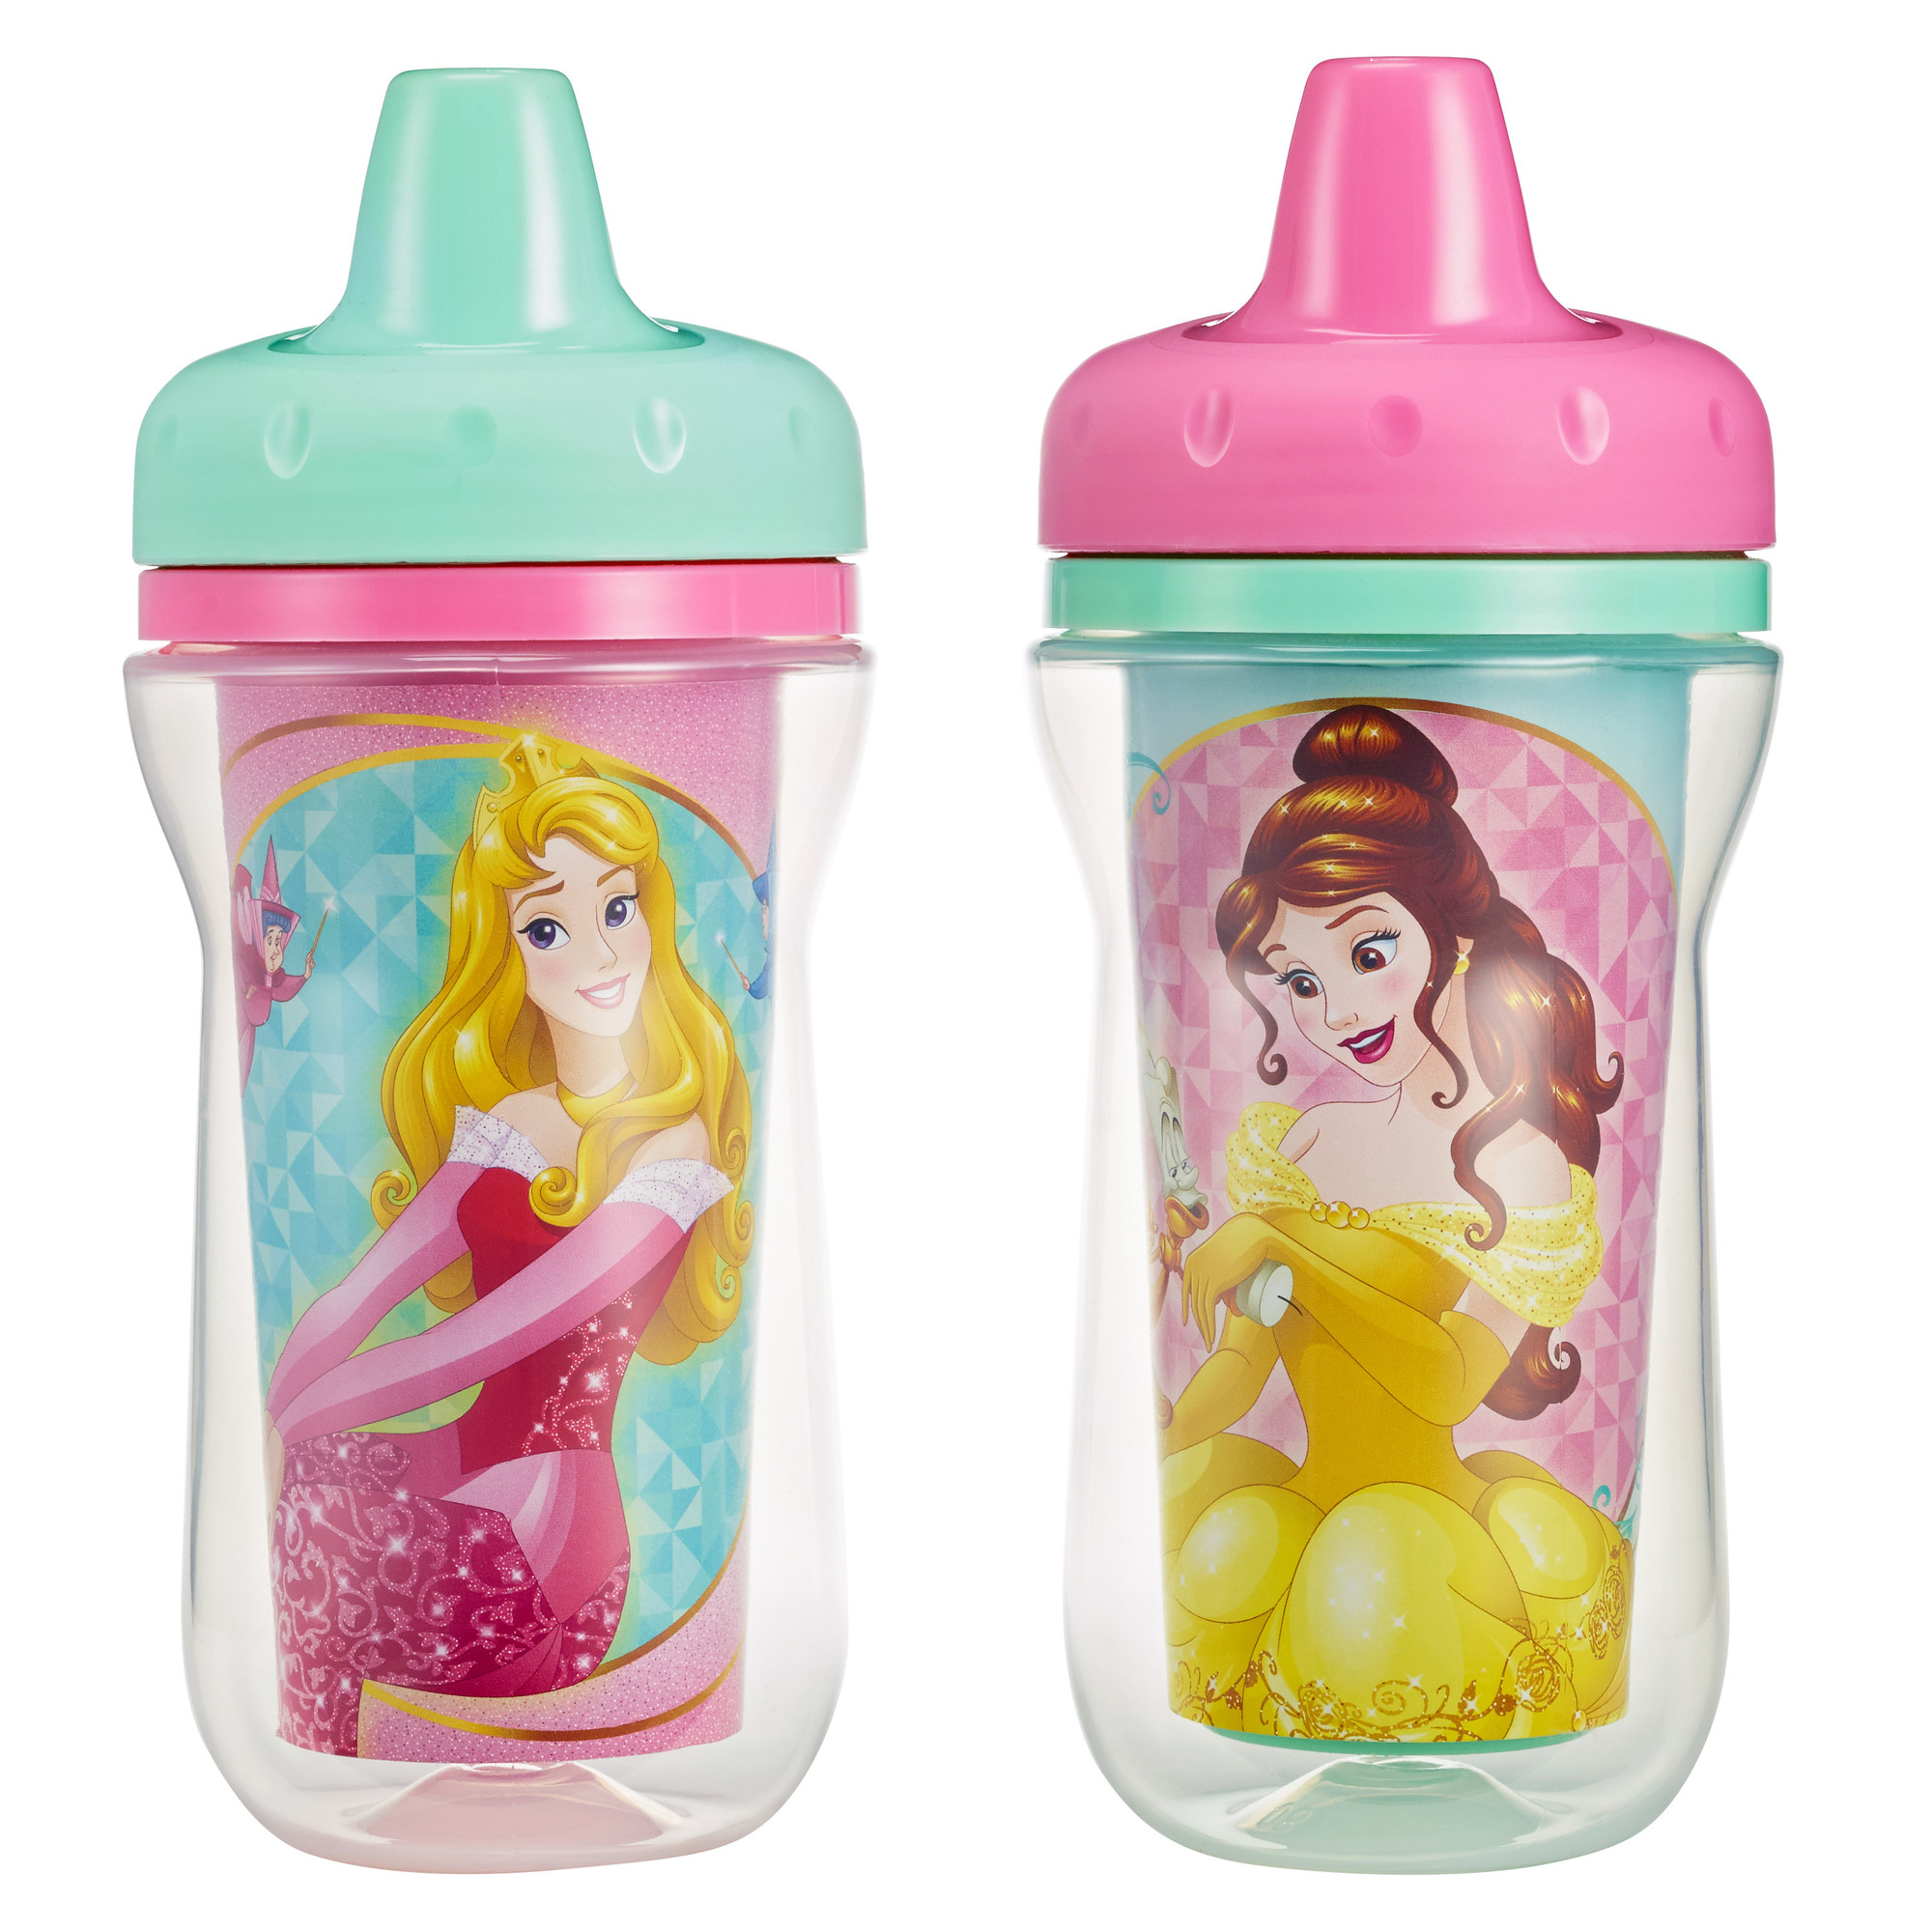 The First Years Meal Mates Insulated Hard Spout Sippy Cup - Princess, 2 pack